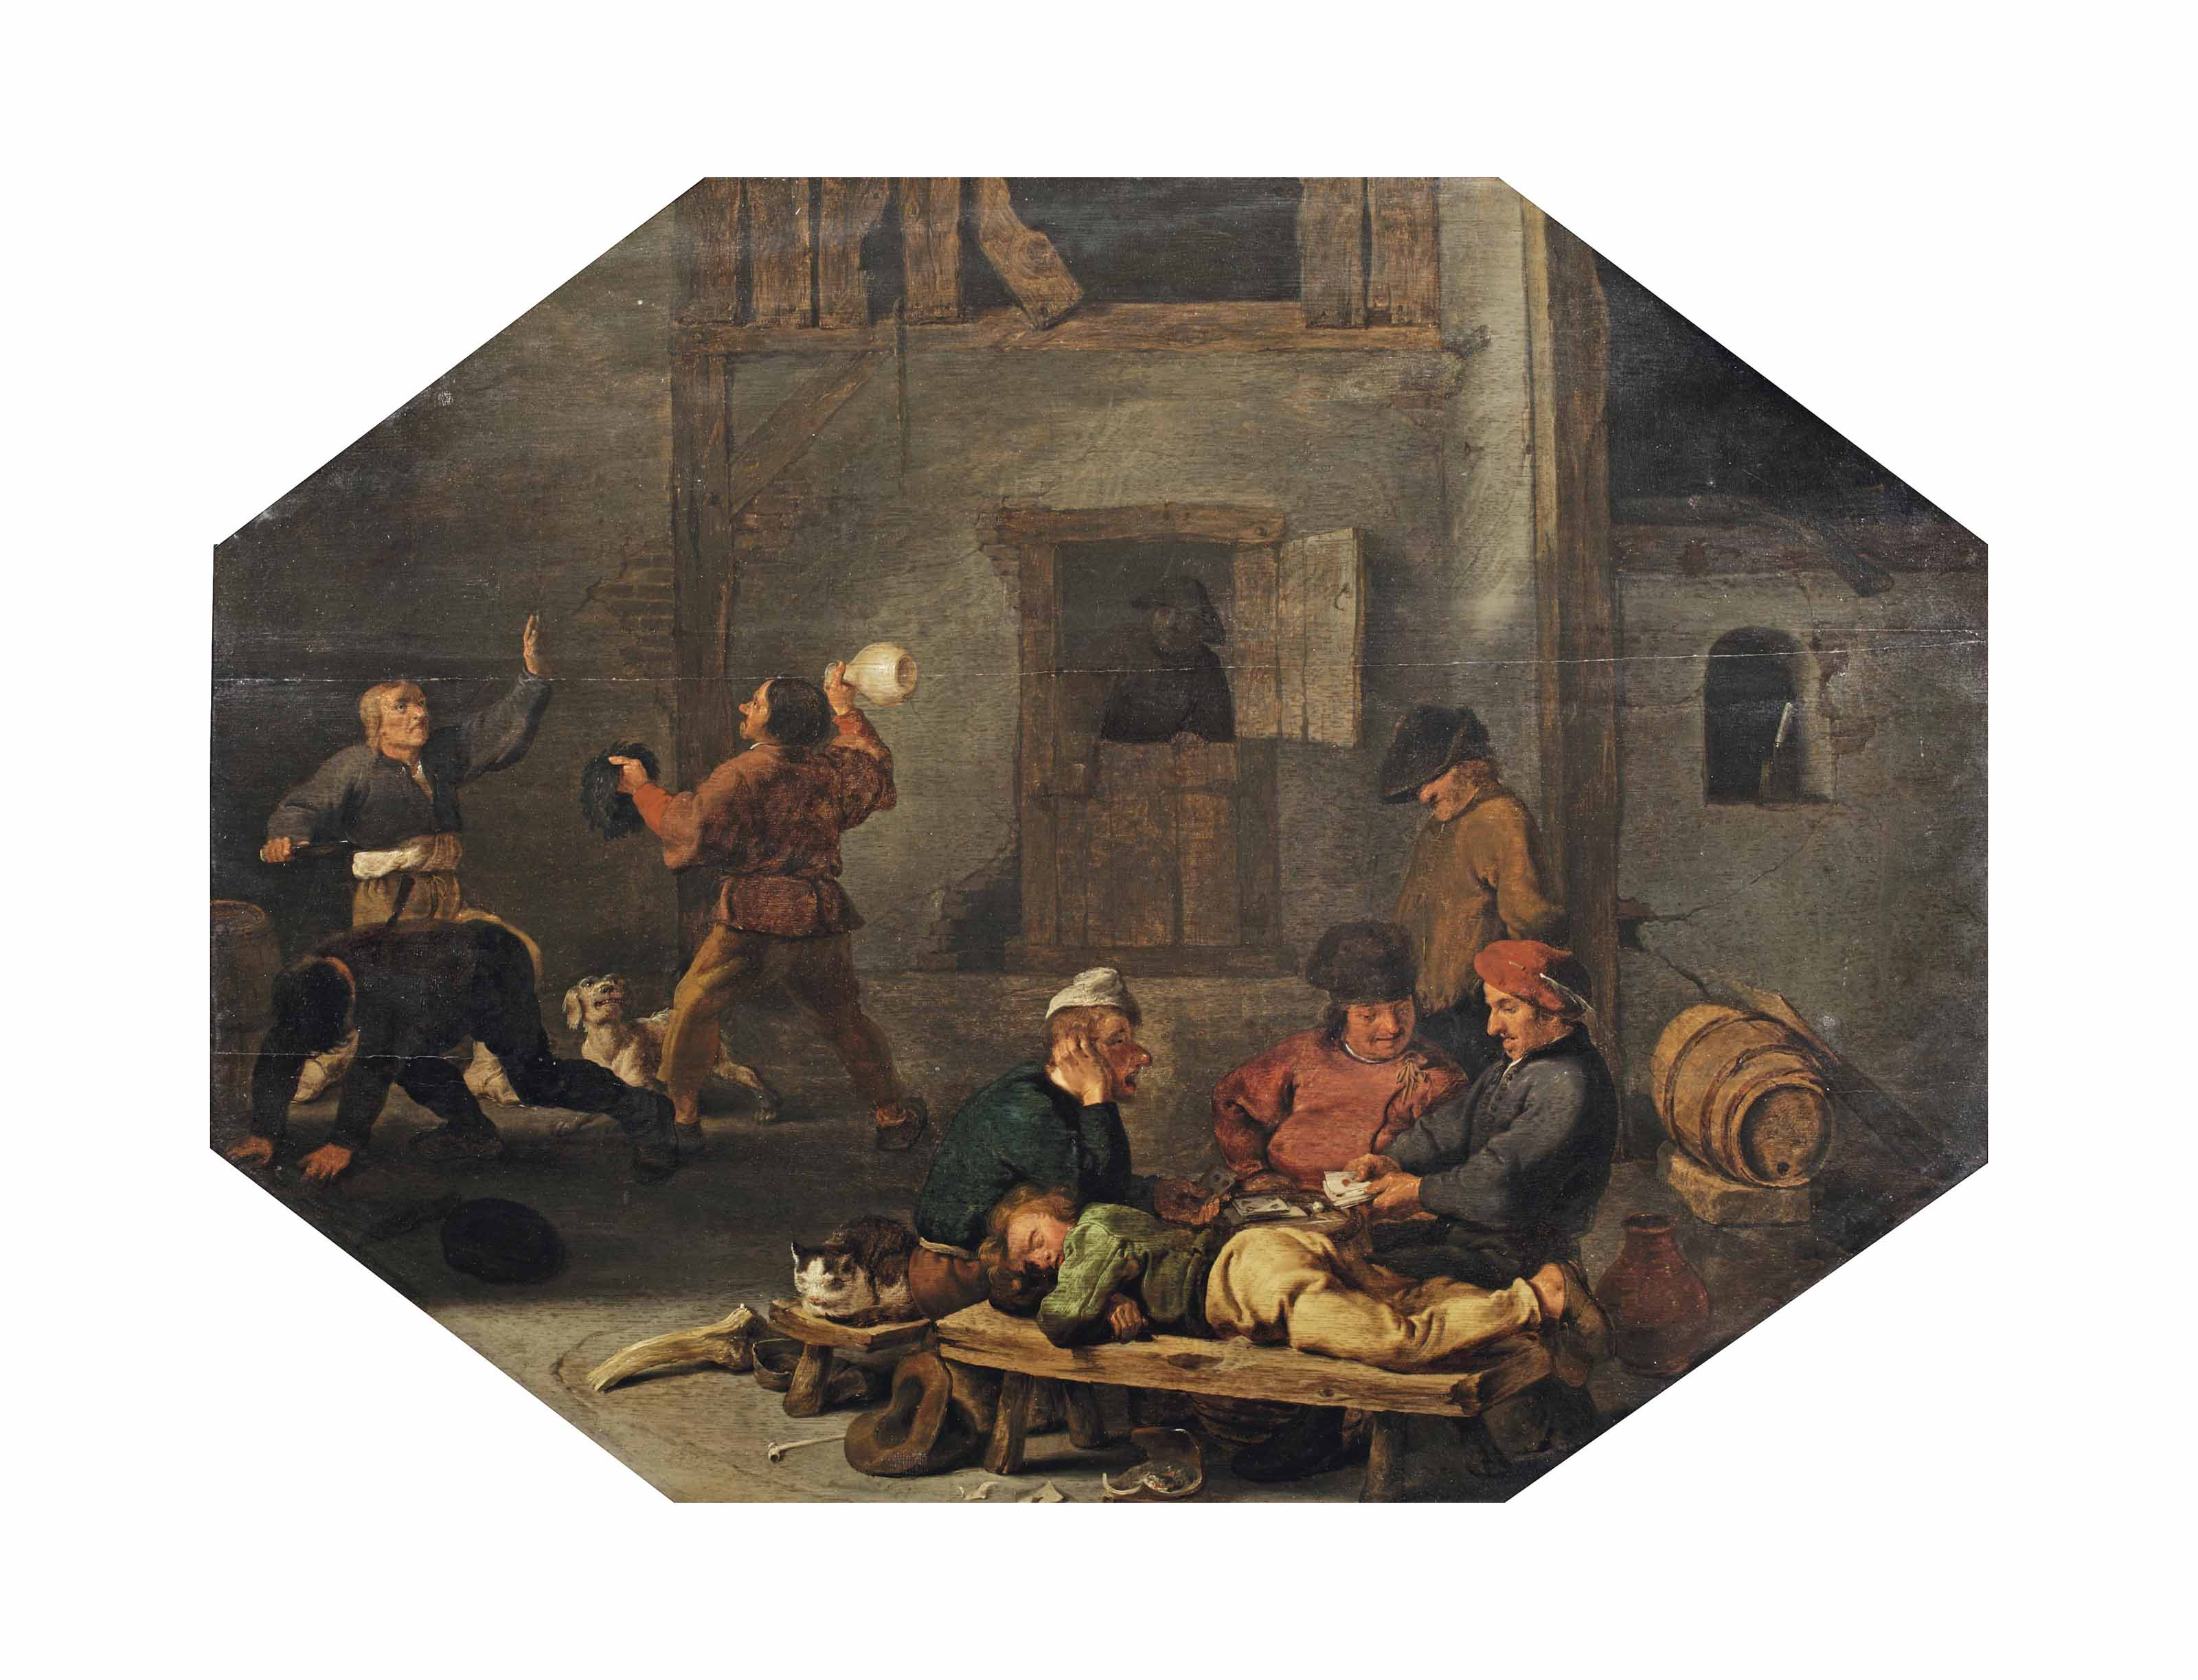 A tavern interior with a game of cards and brawlers